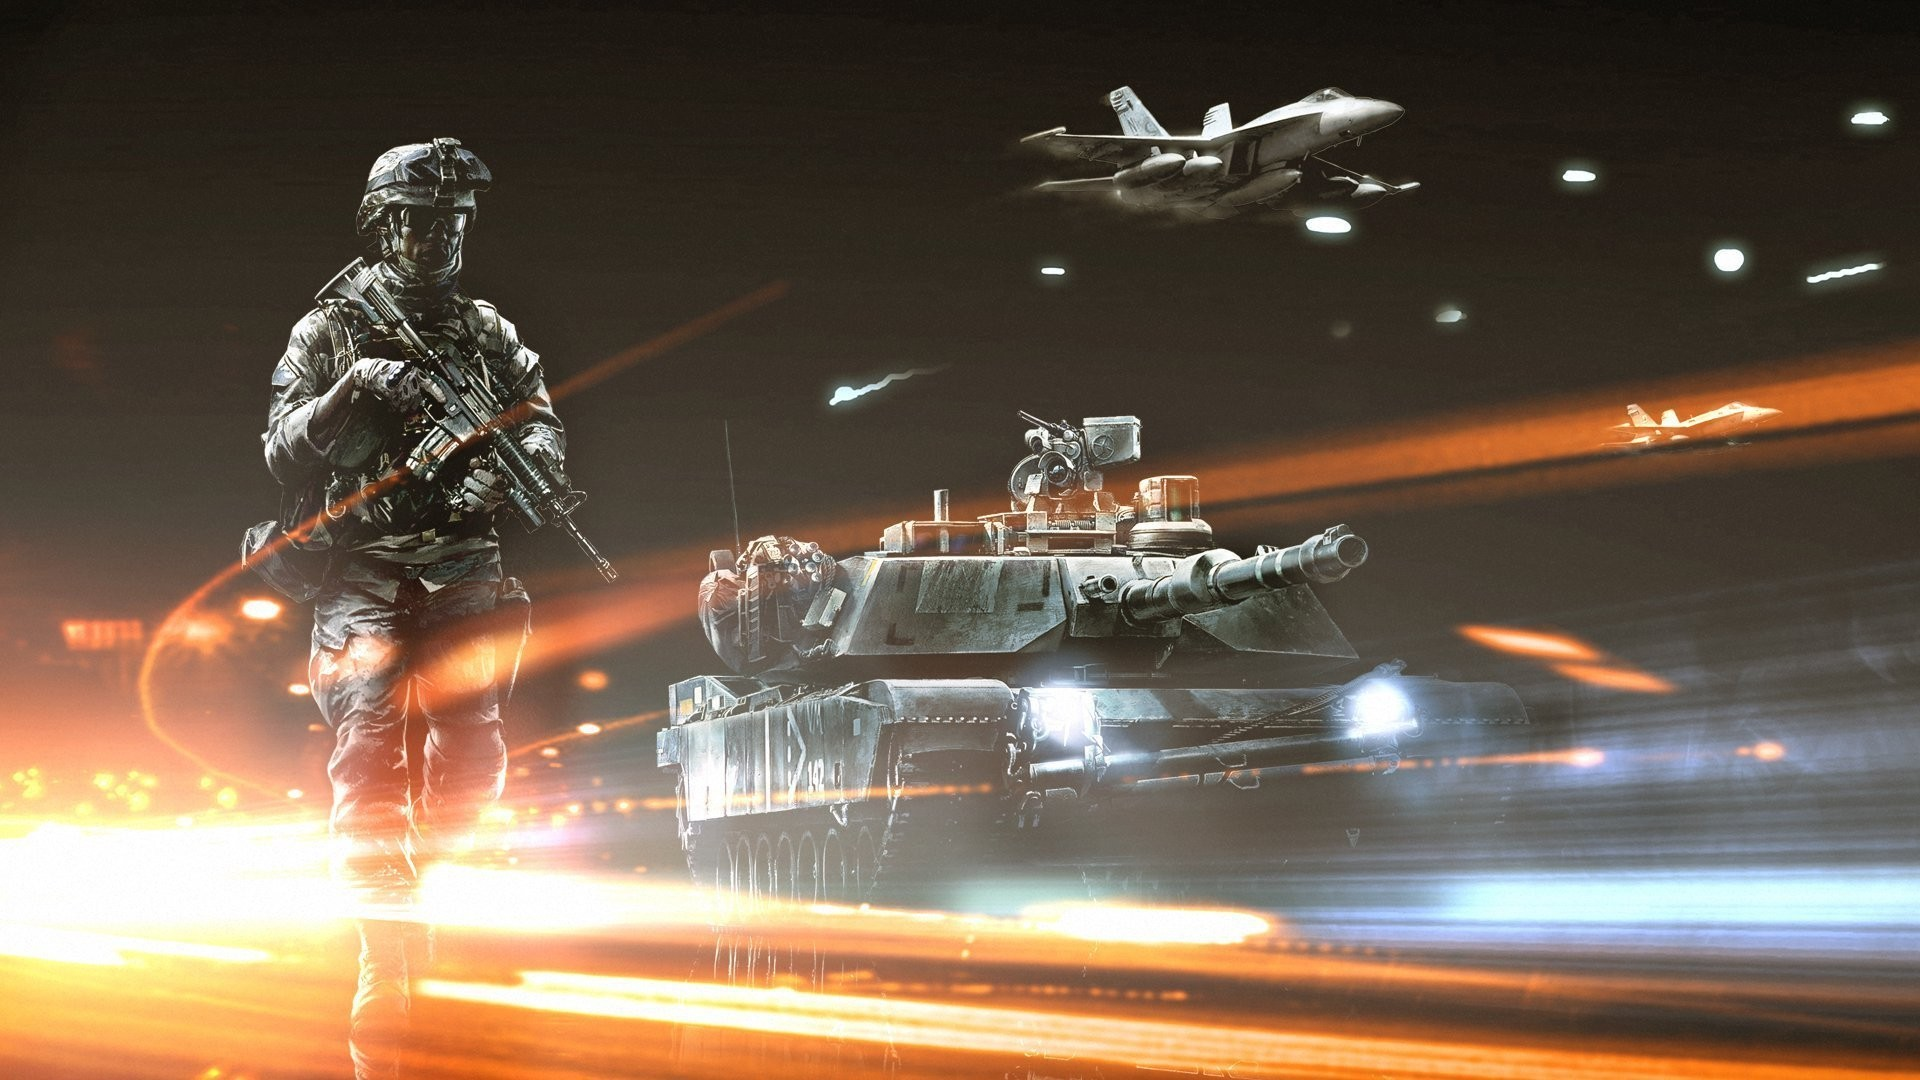 tanks Aircraft video games HD Wallpaper